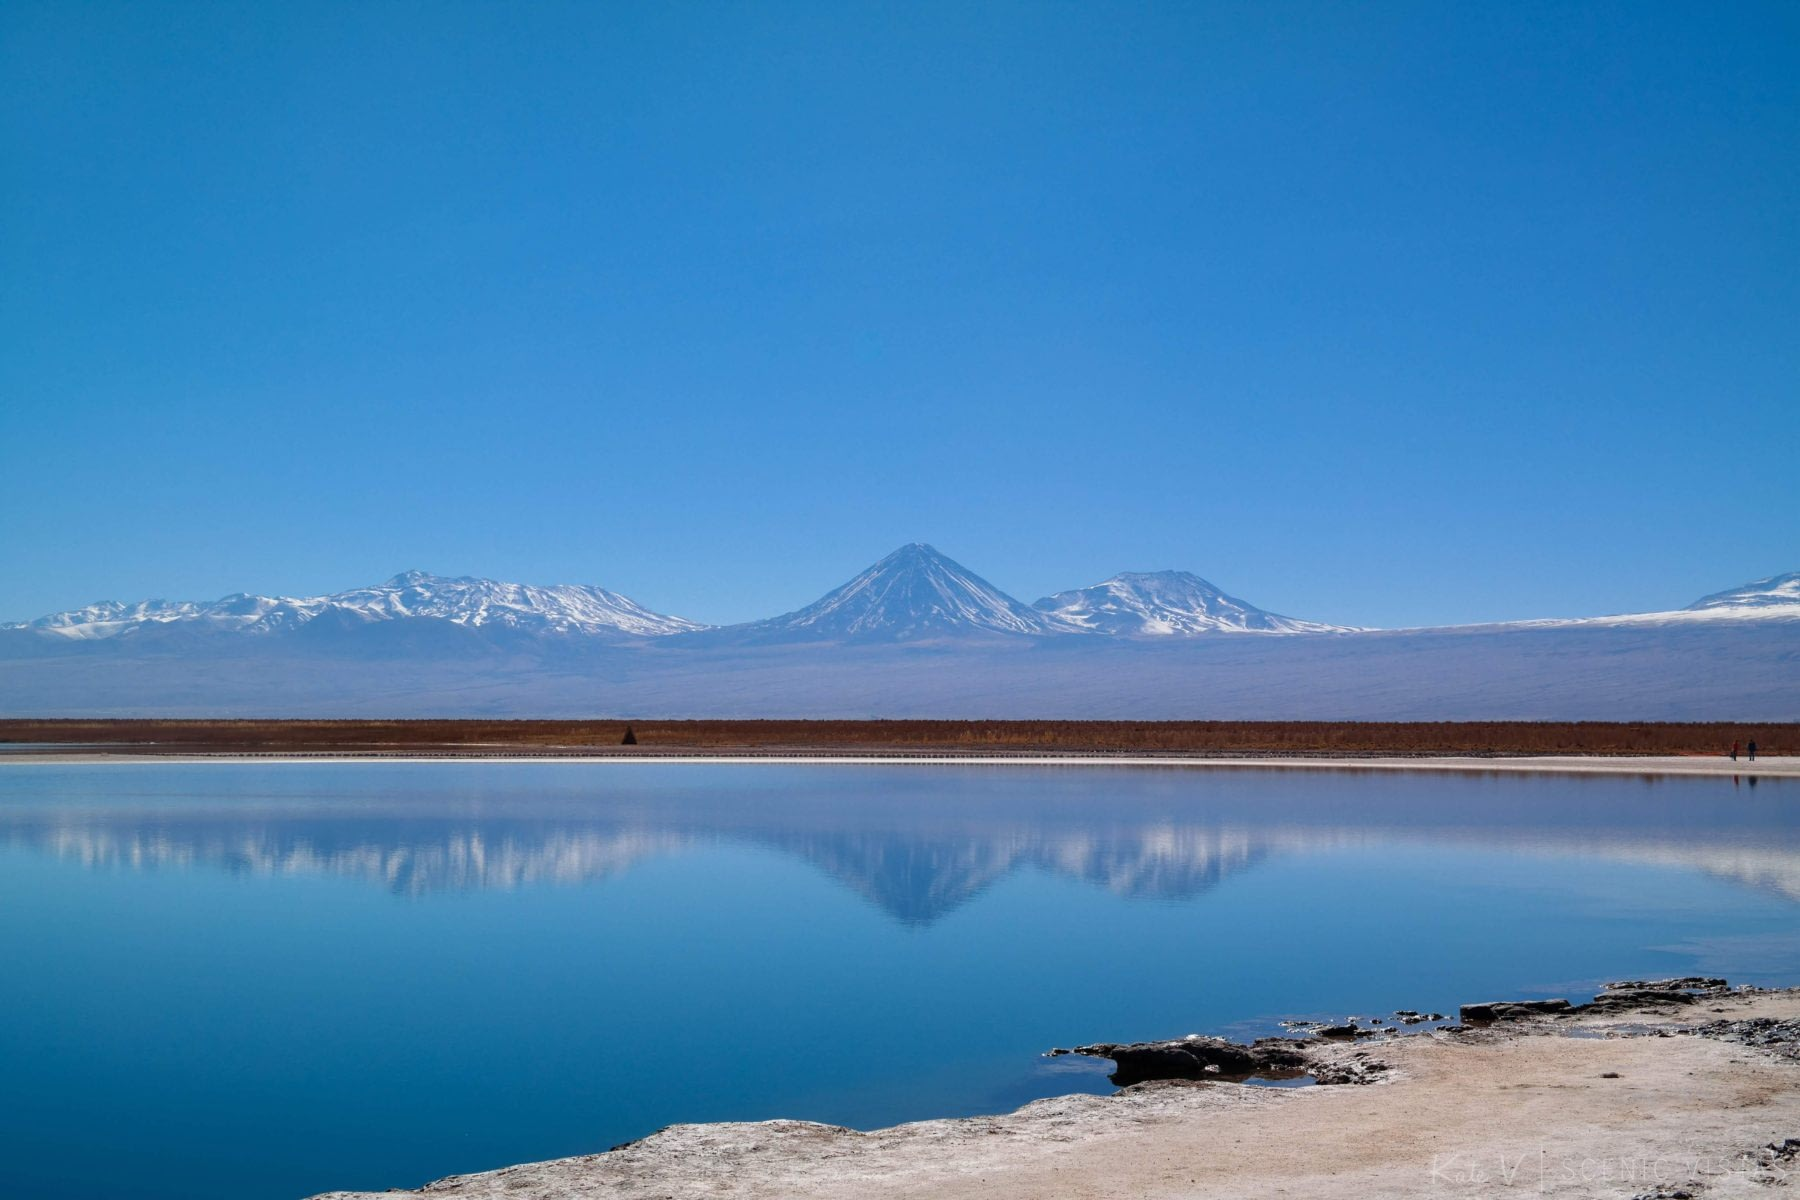 Snow-capped mountains reflecting in Laguna Cejar.